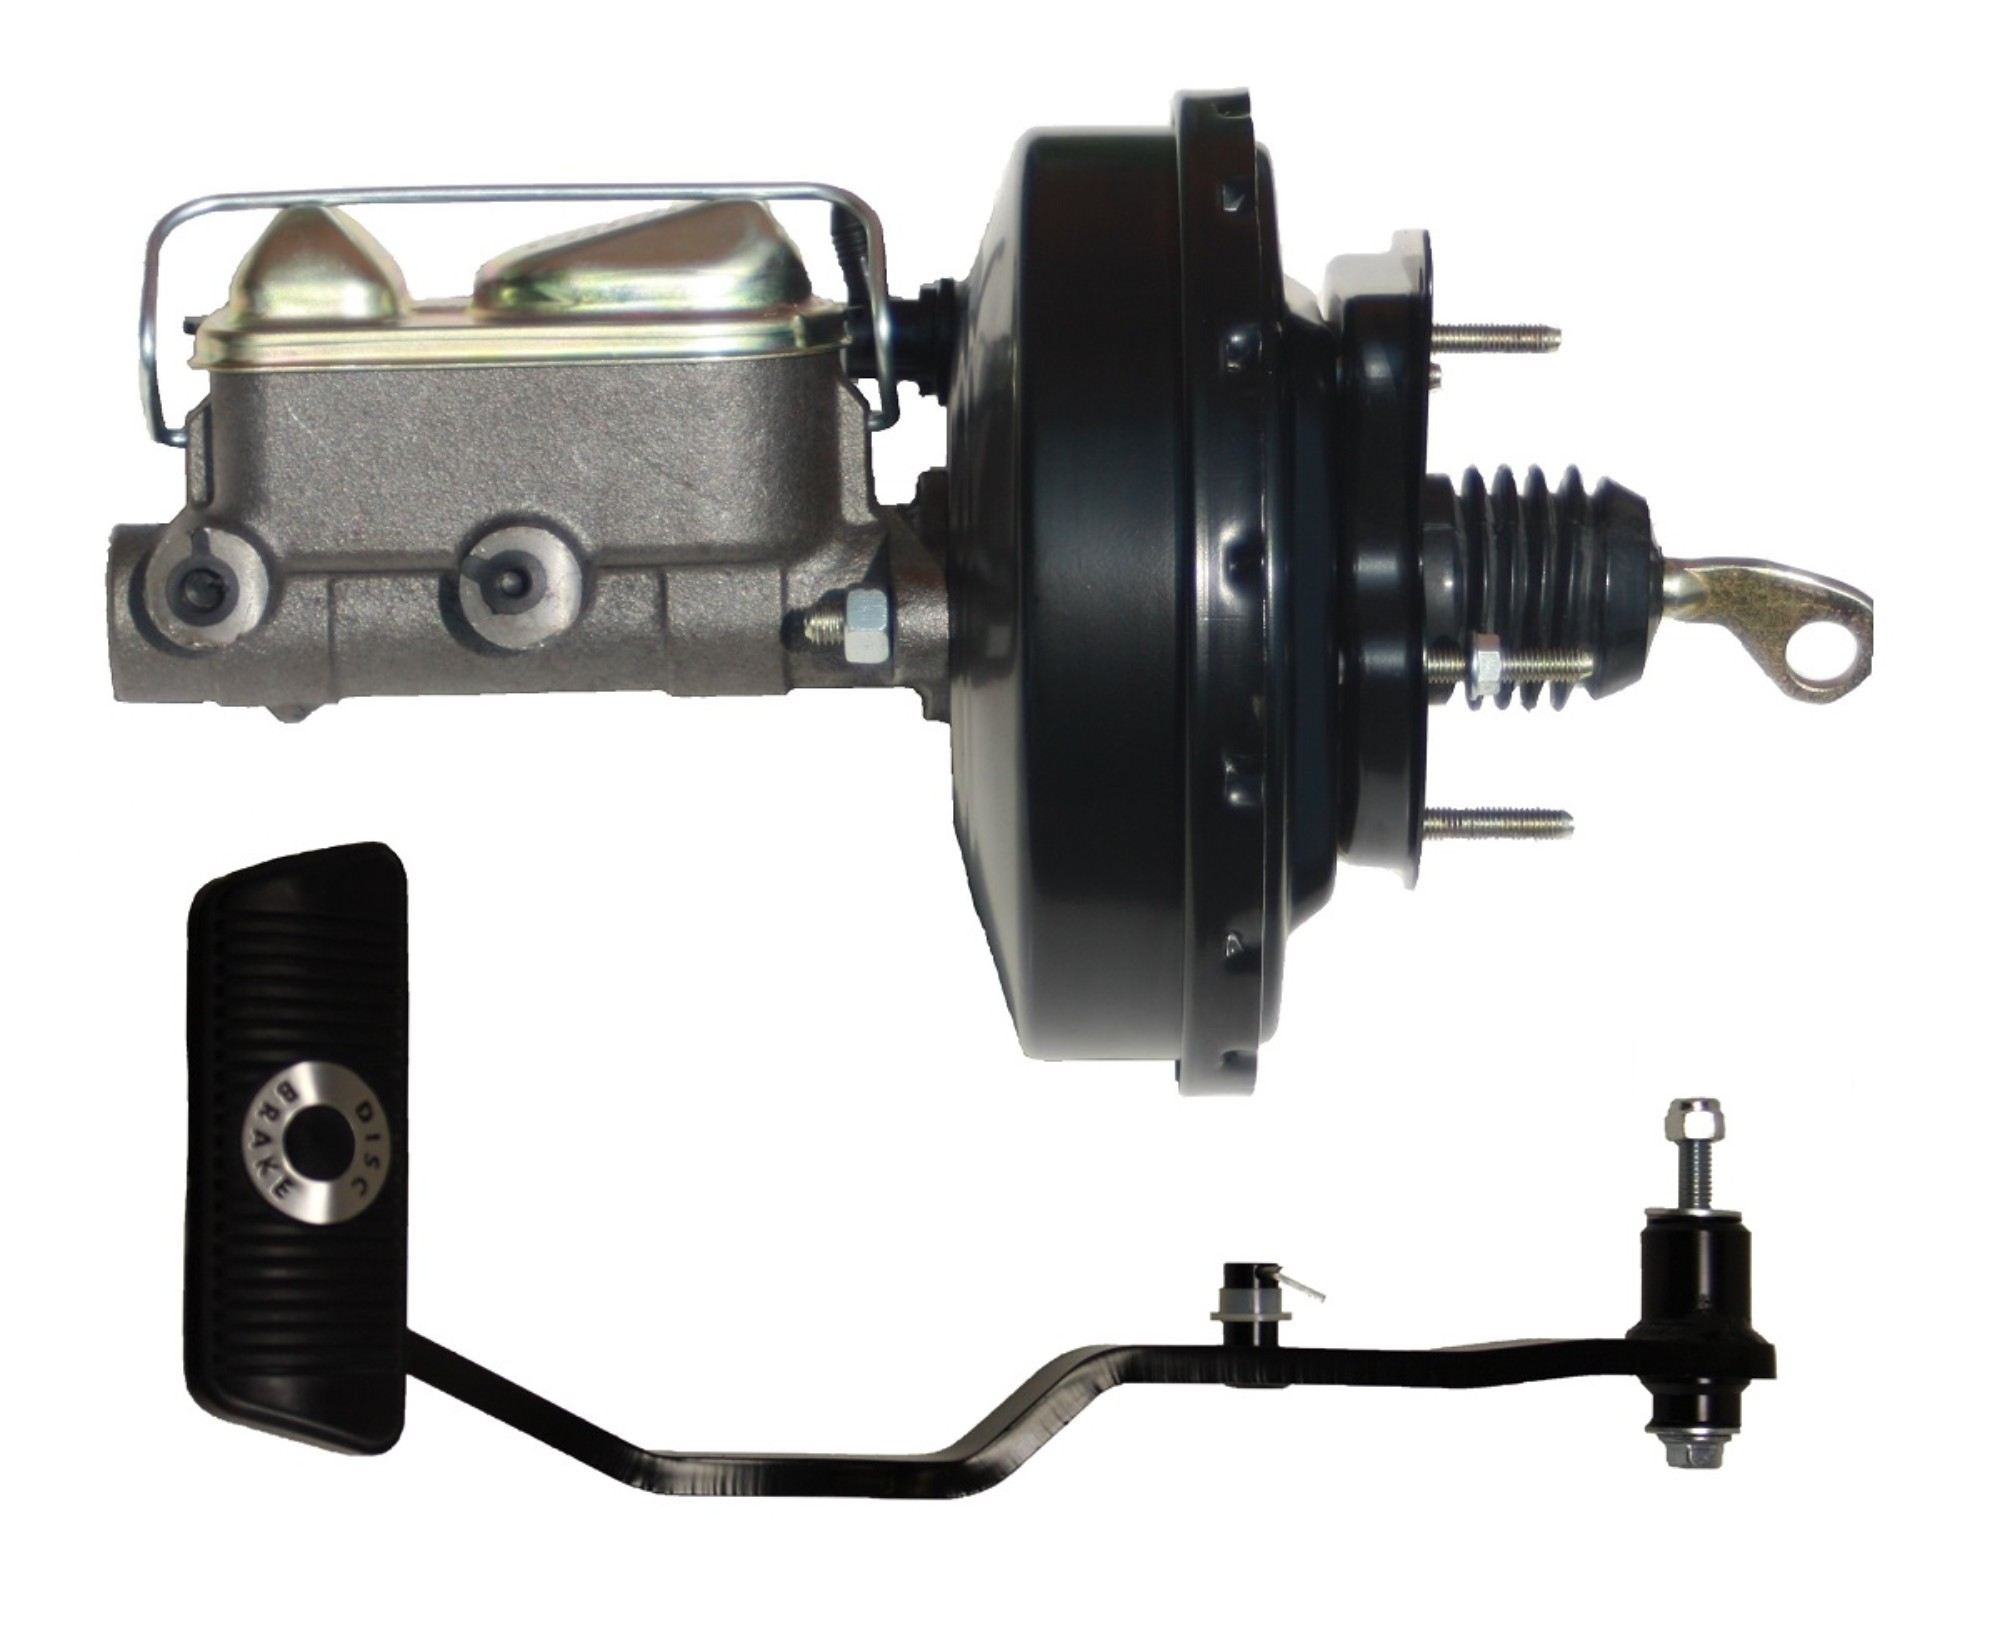 LEED Brakes 034PA 9 in Power Brake Booster 1 in bore Master Cylinder  Auto